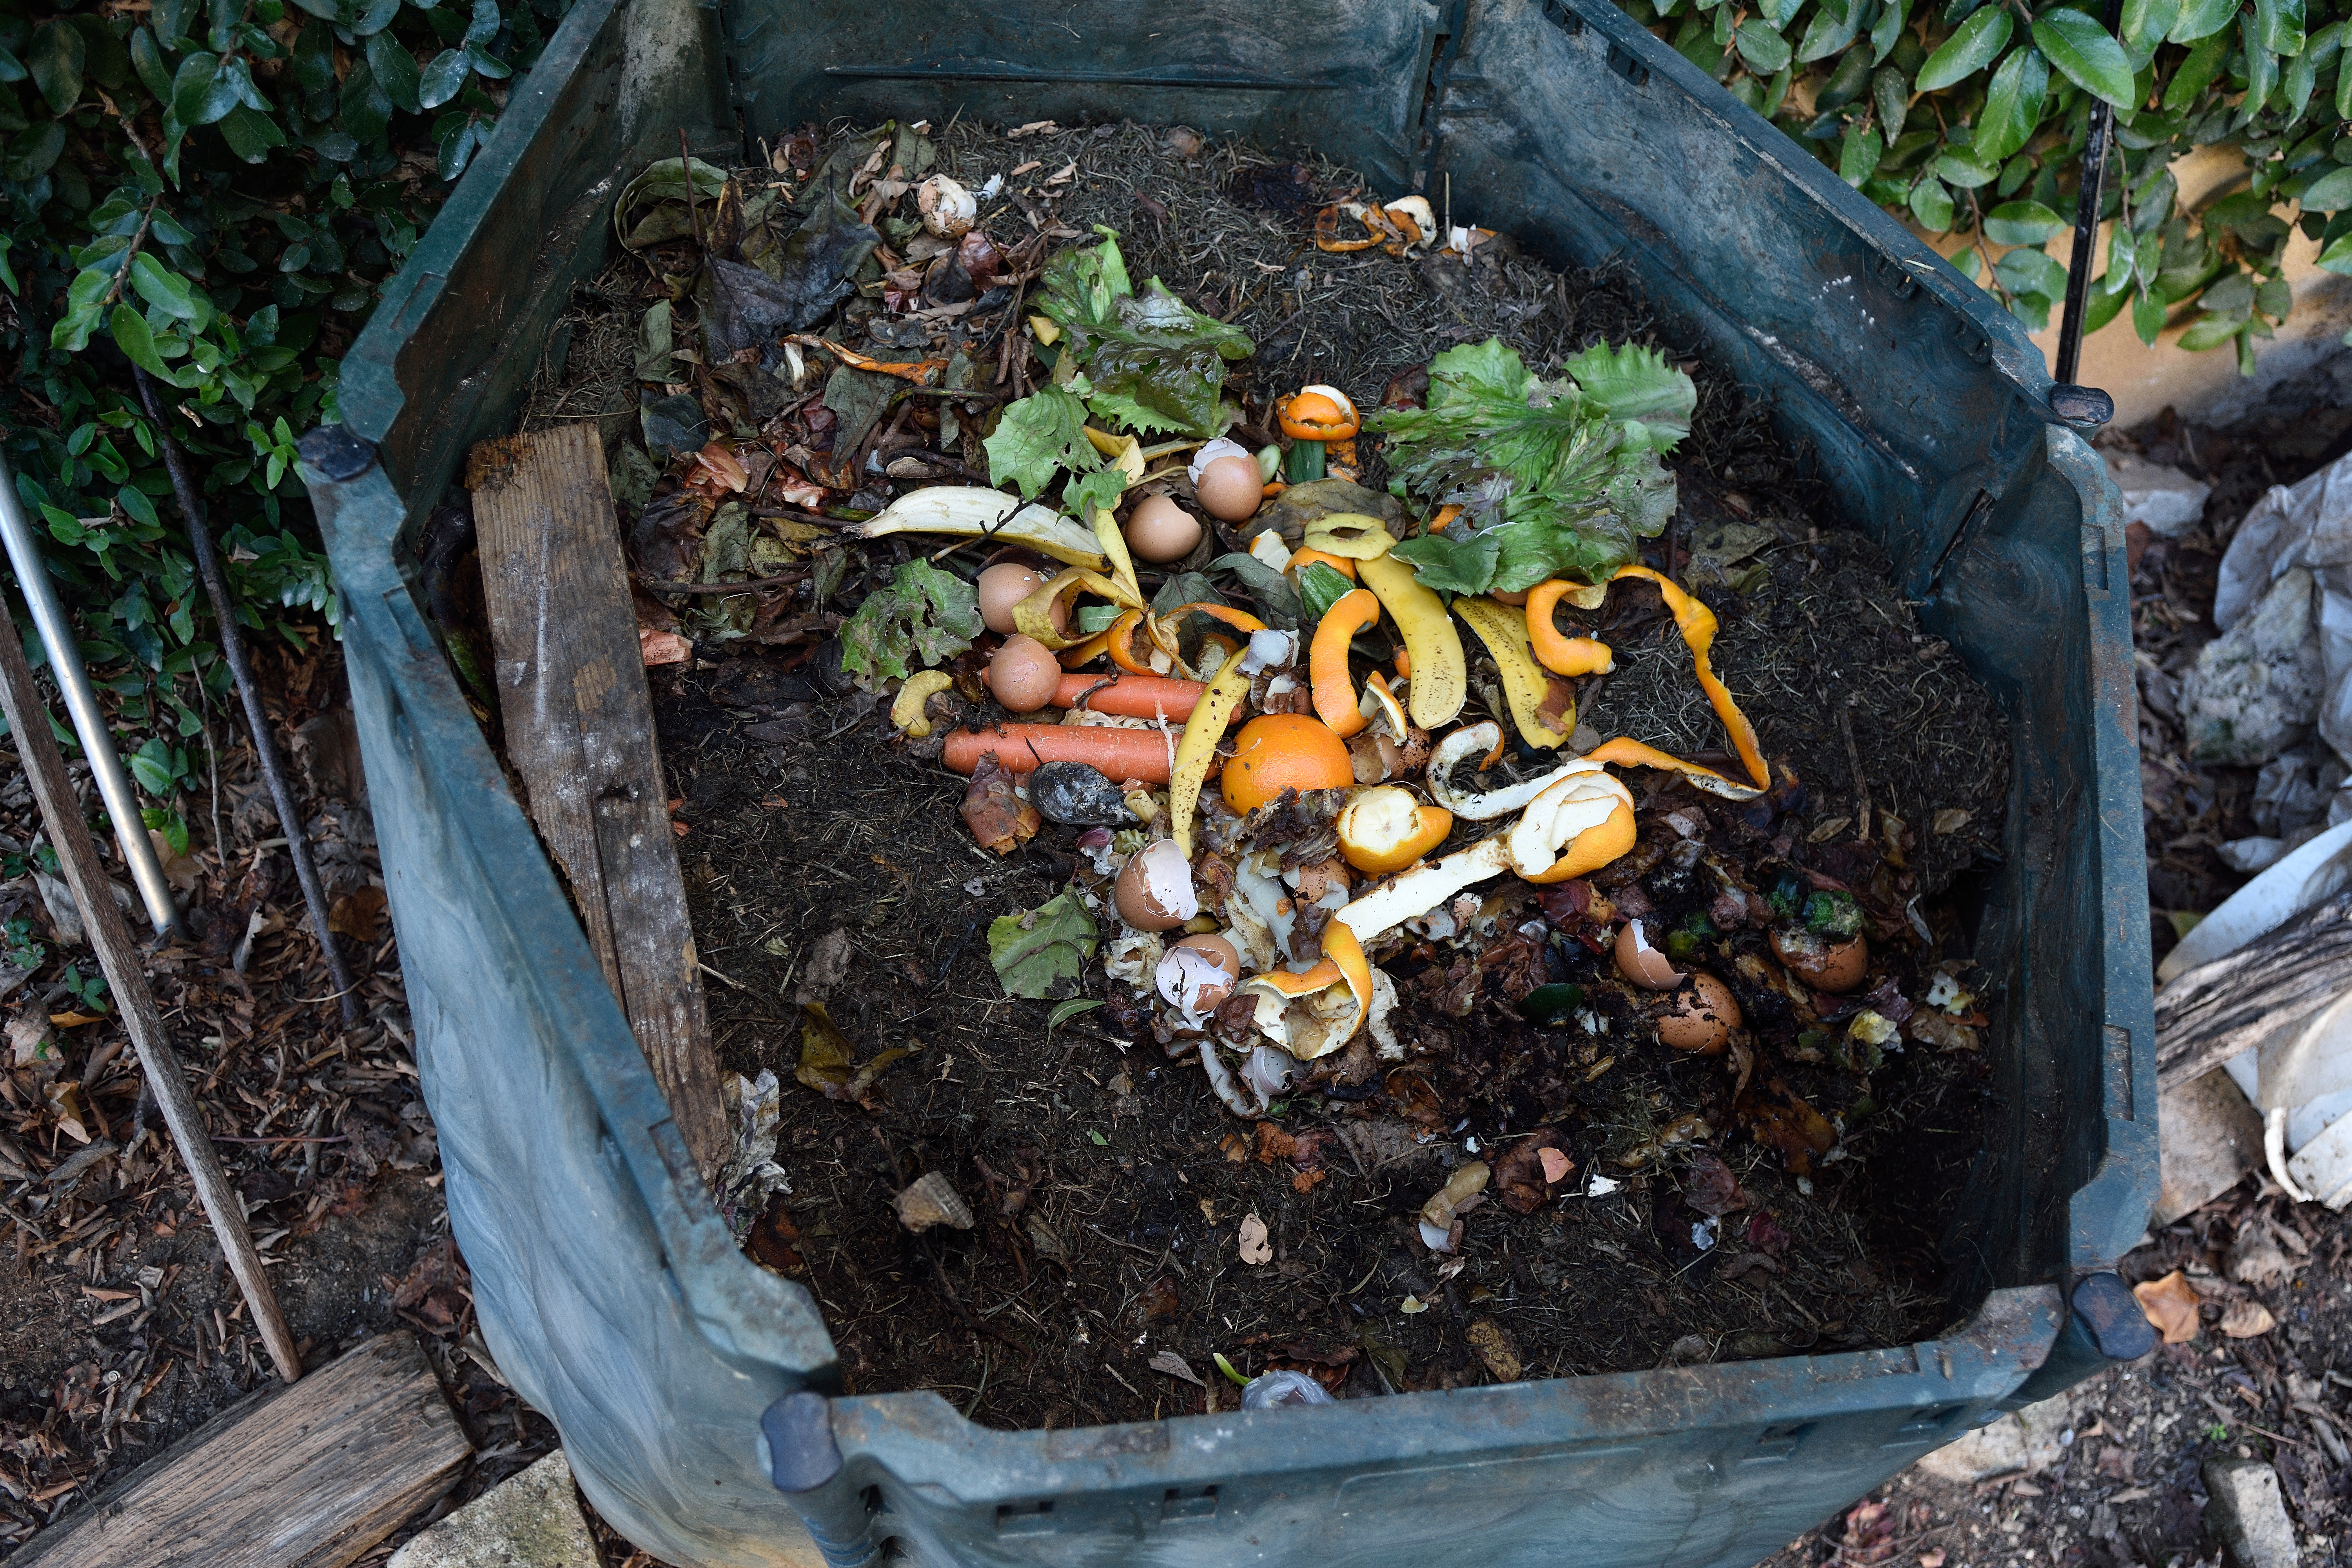 How to Compost Cow Dung | Home Guides | SF Gate